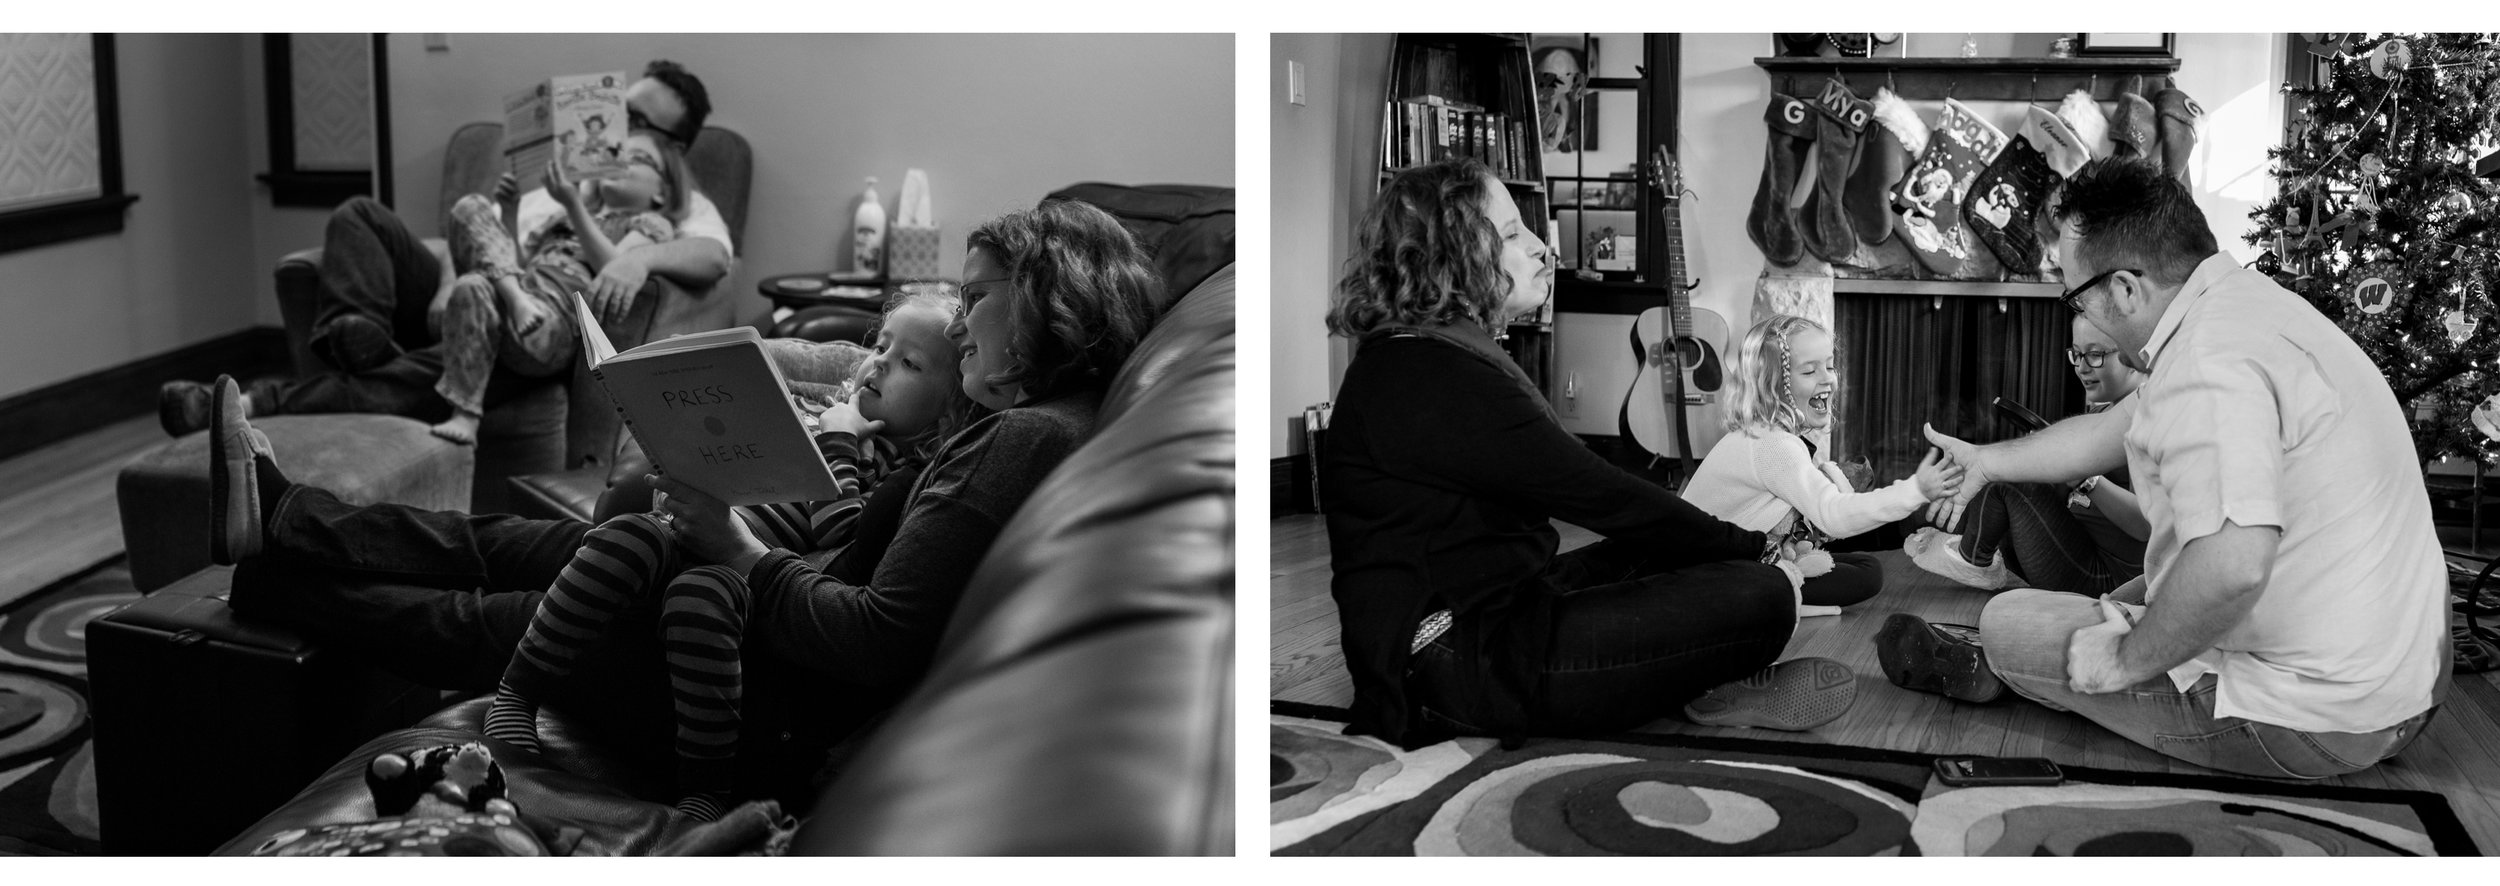 They still spent lots of time together as a family, but it looks very different. In 2018 (right) the girls joke and make sarcastic comments with the parents in way they weren't yet able to back in 2016 (left). I look forward to seeing what The Waggle family will look like in another two years.